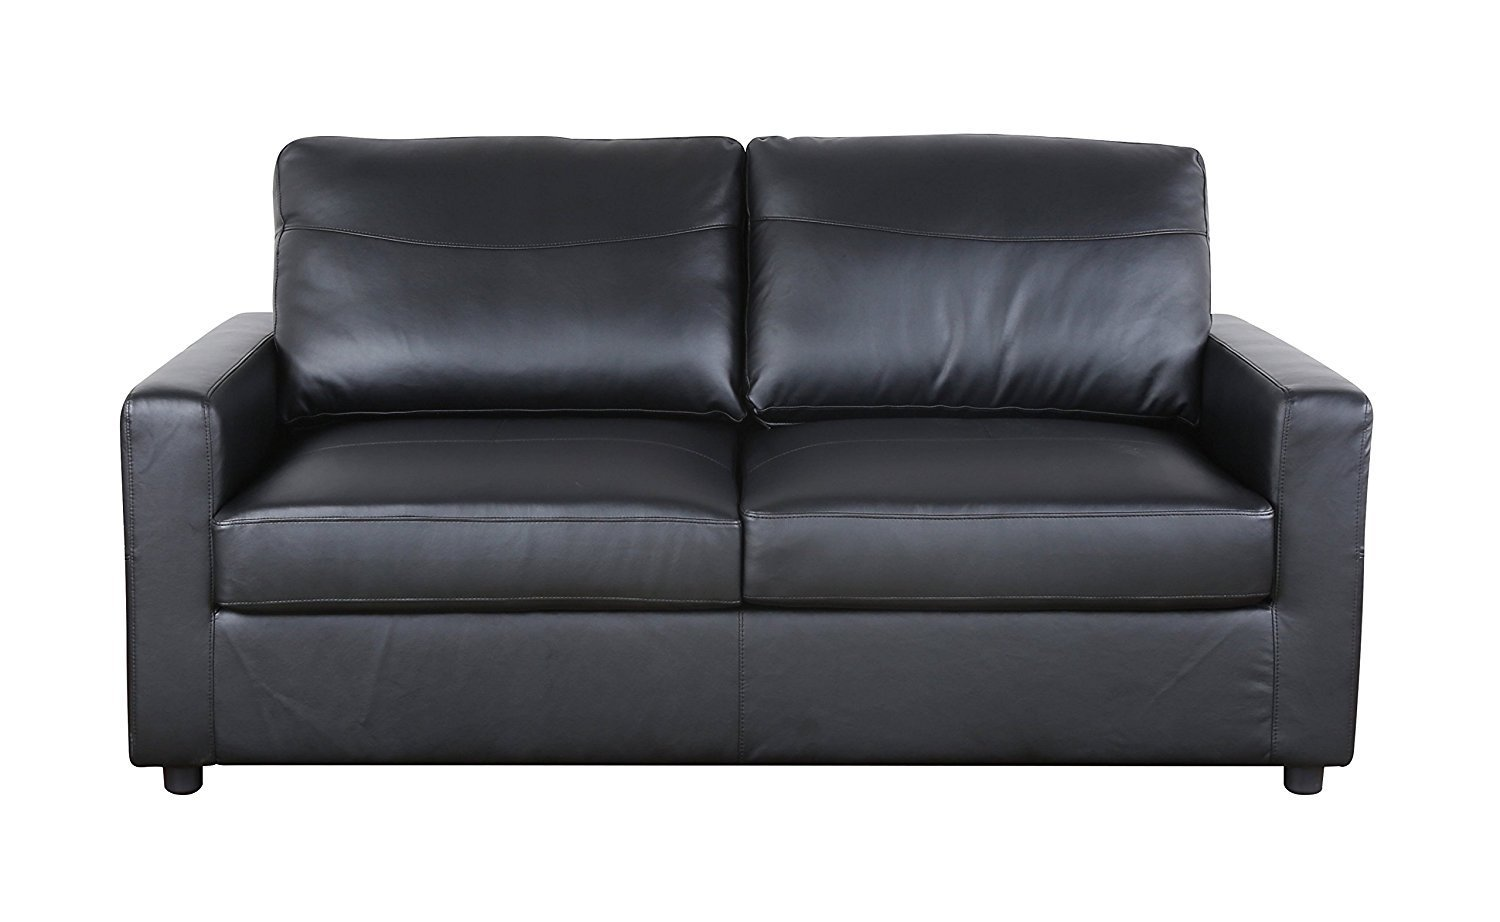 baxton studio dobson leather modern sectional sofa berkline reclining rooms to go couches home furniture design